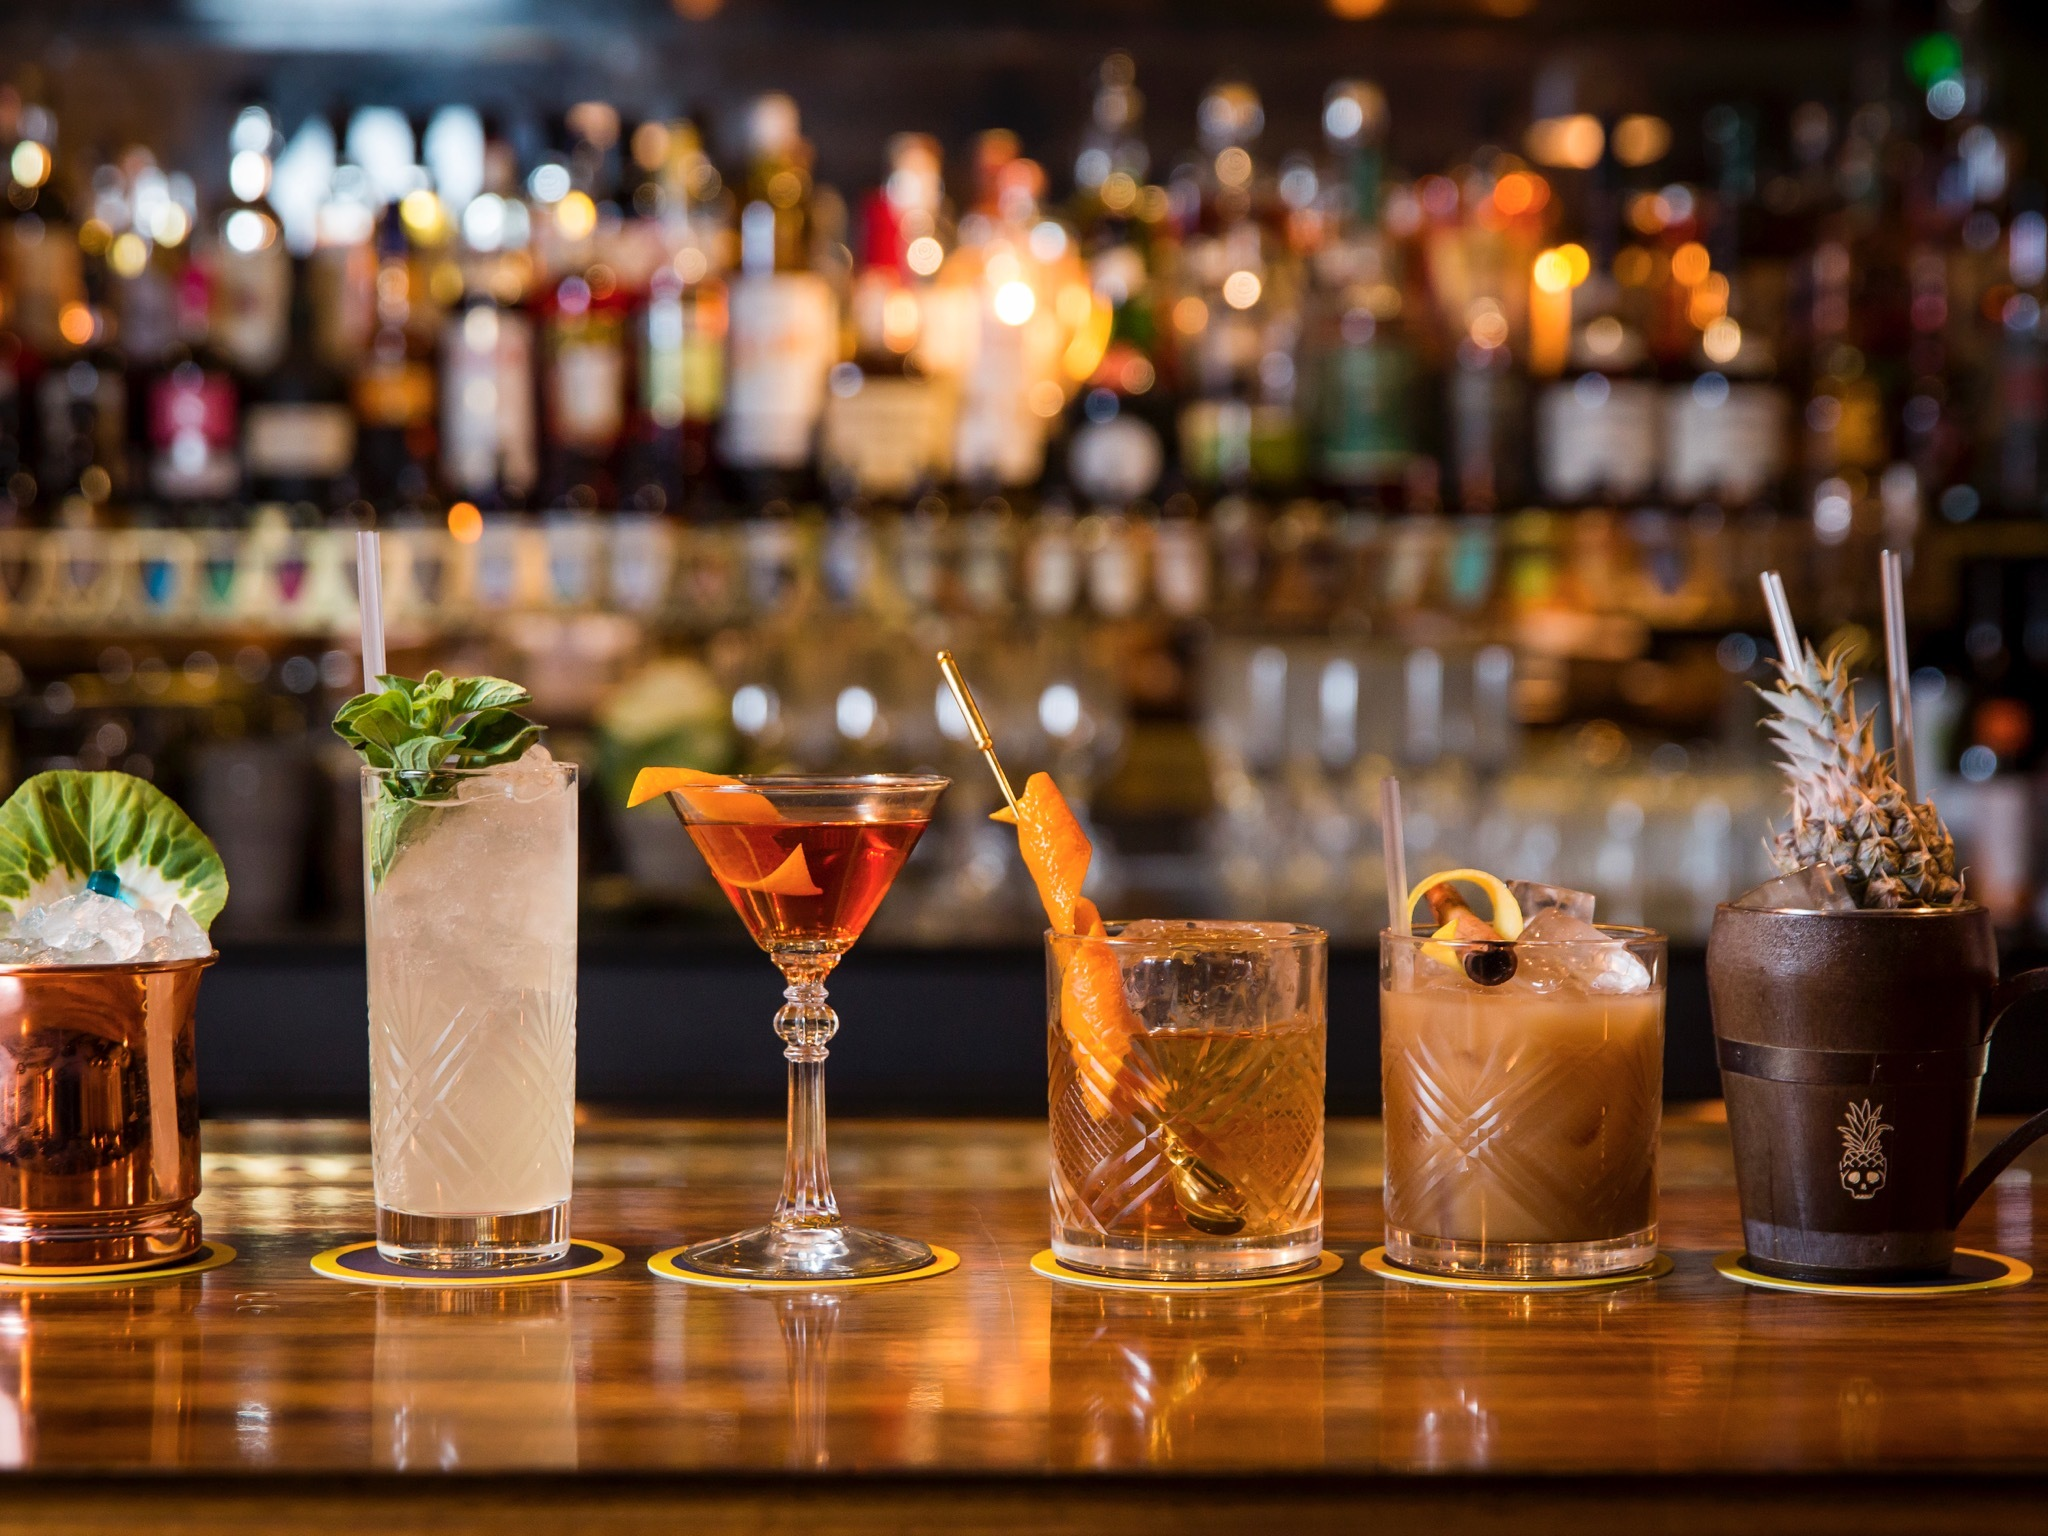 Cocktail Bars with Super-Fun Names!